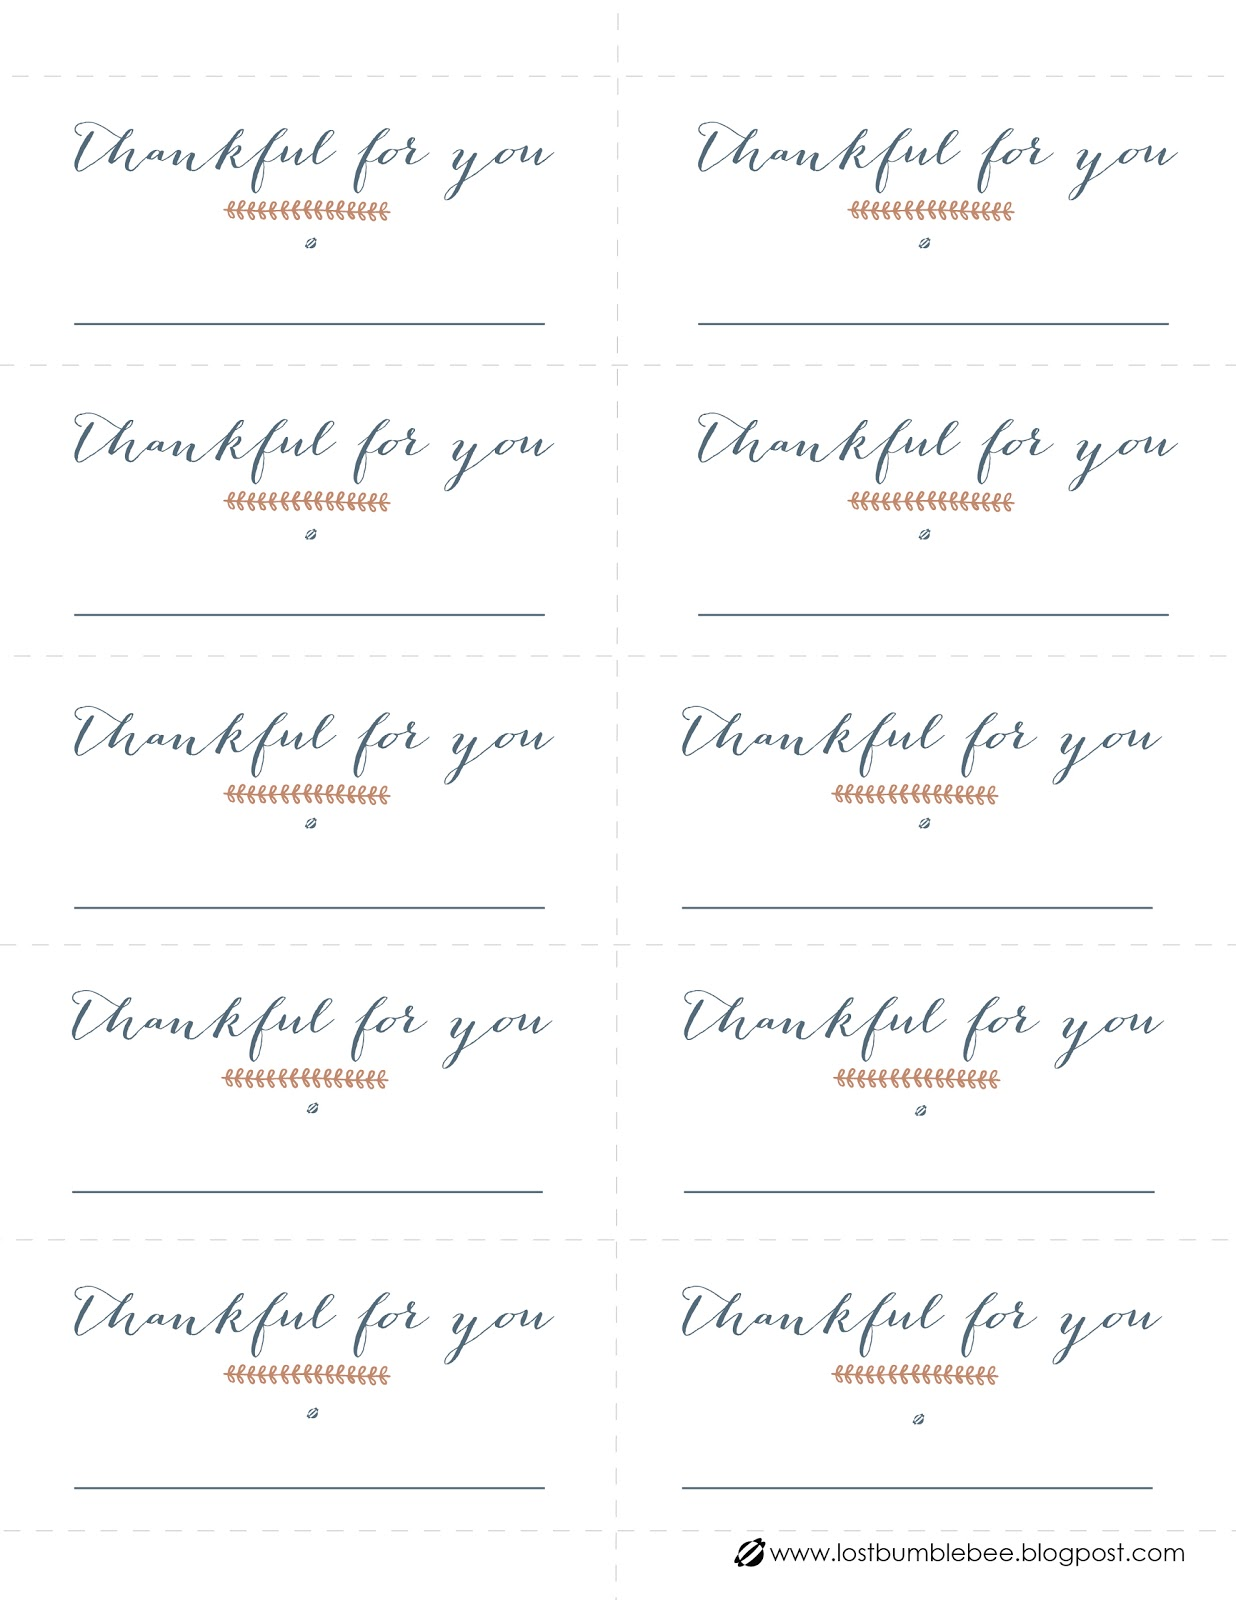 LostBumblebee 2013 Table Place Settings- Thanksgiving Free Printable